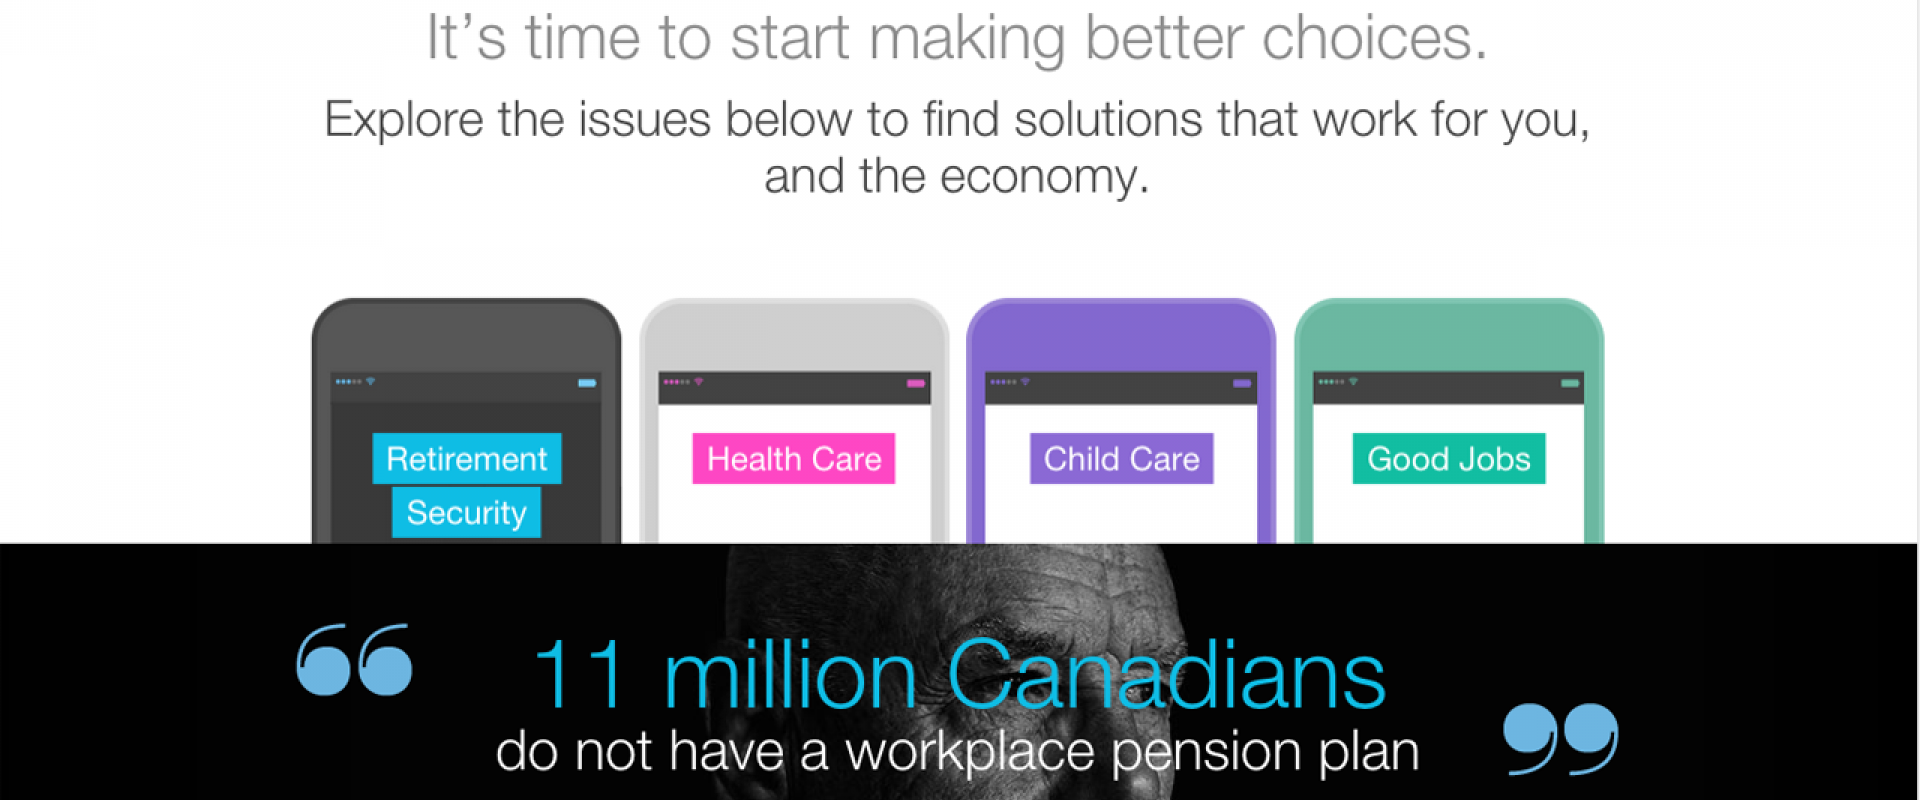 It's time to start making better choices. Betterchoice.ca - Canadian Labour Congress